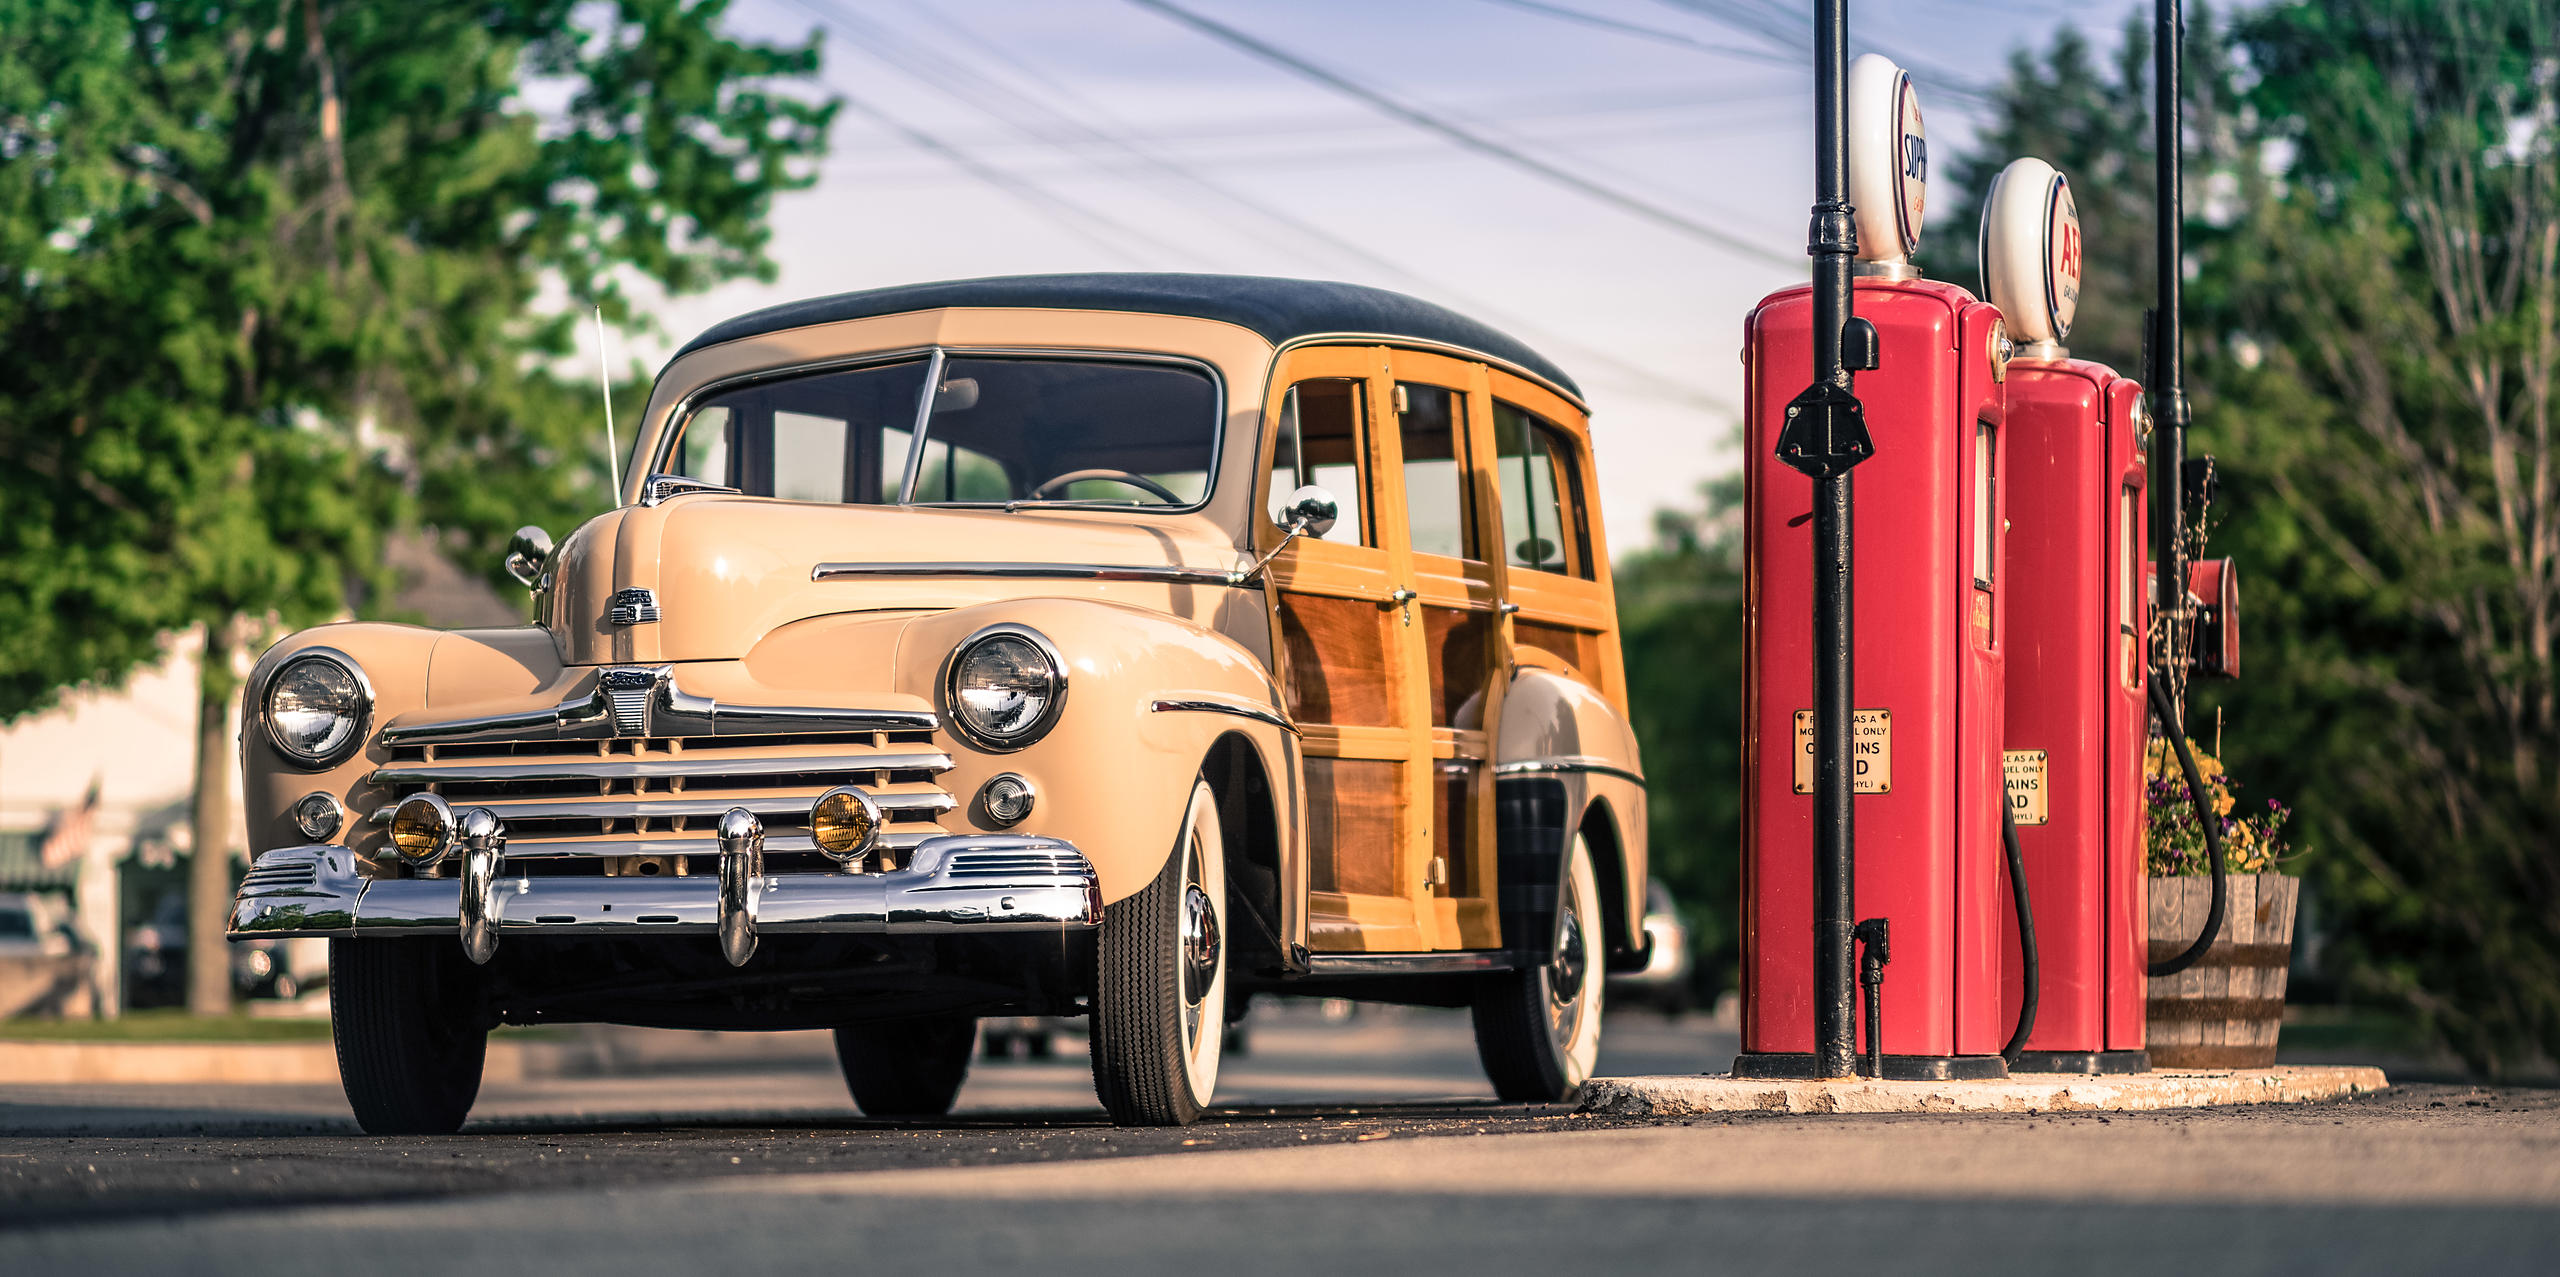 Antique 1948 Ford Woodie Wagon